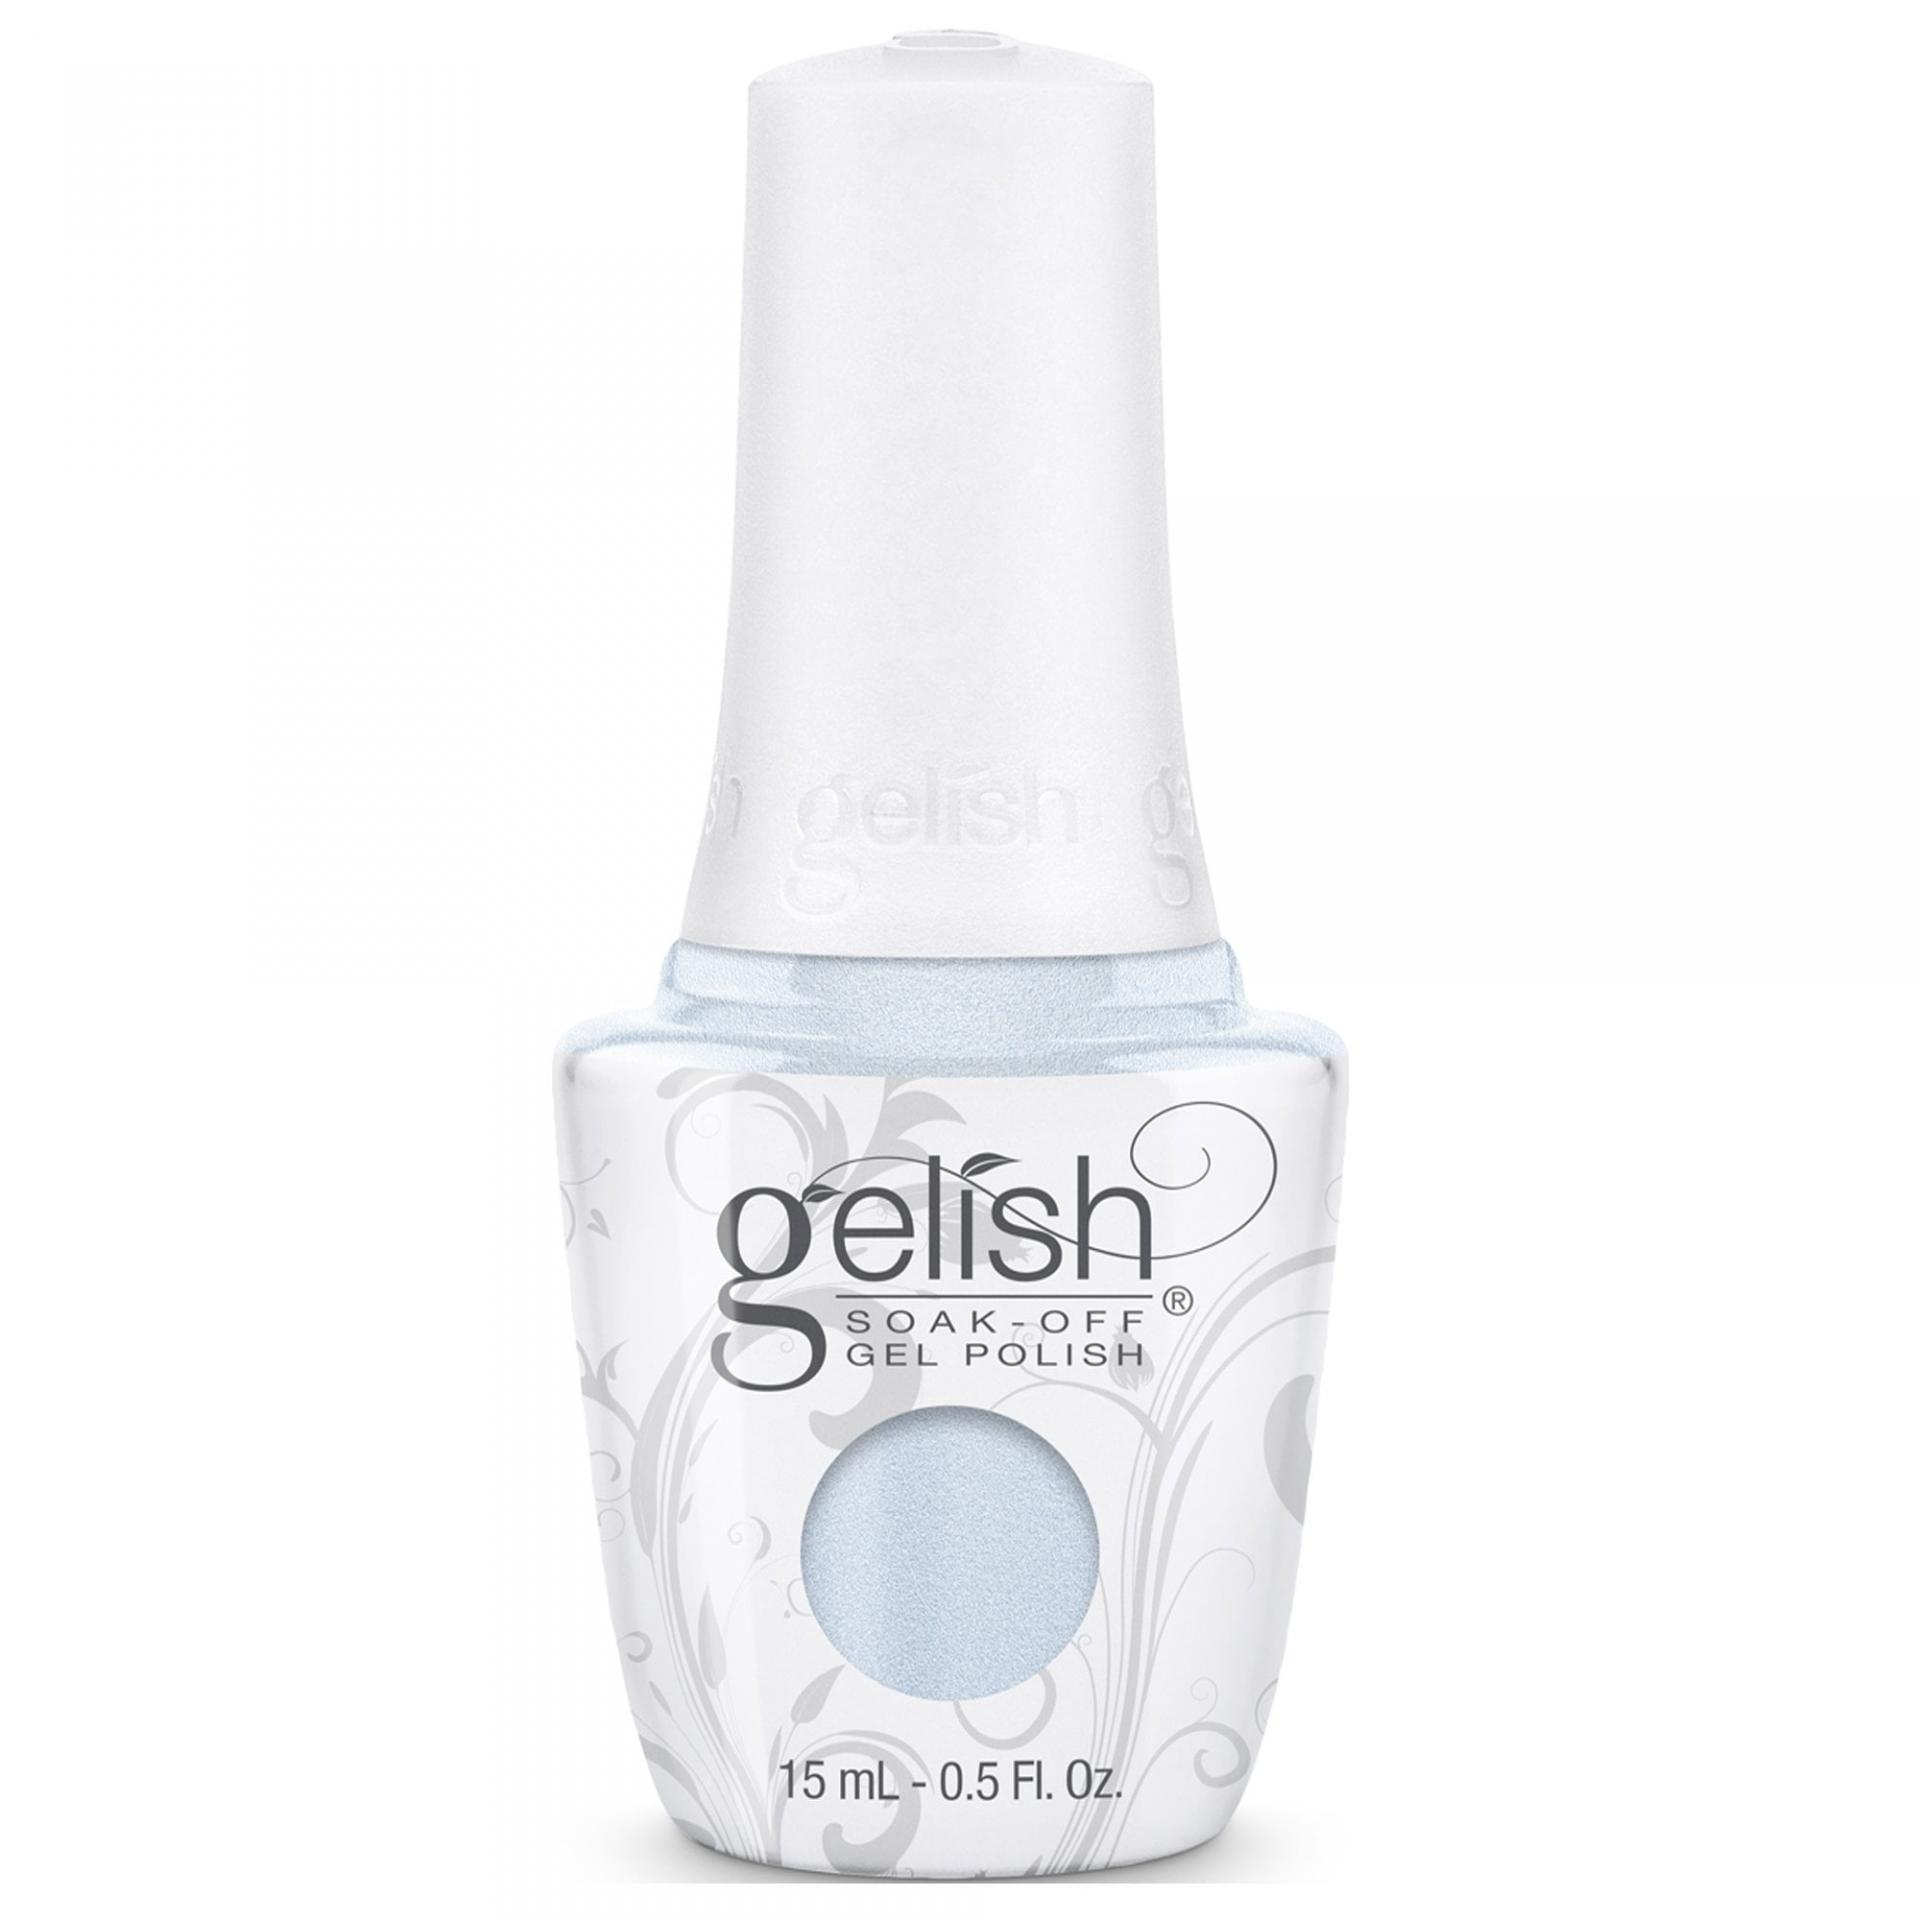 Gelish forever fabulous 2018 gel polish collection wrapped in satin 15ml 1110338 p25757 100392 zoom